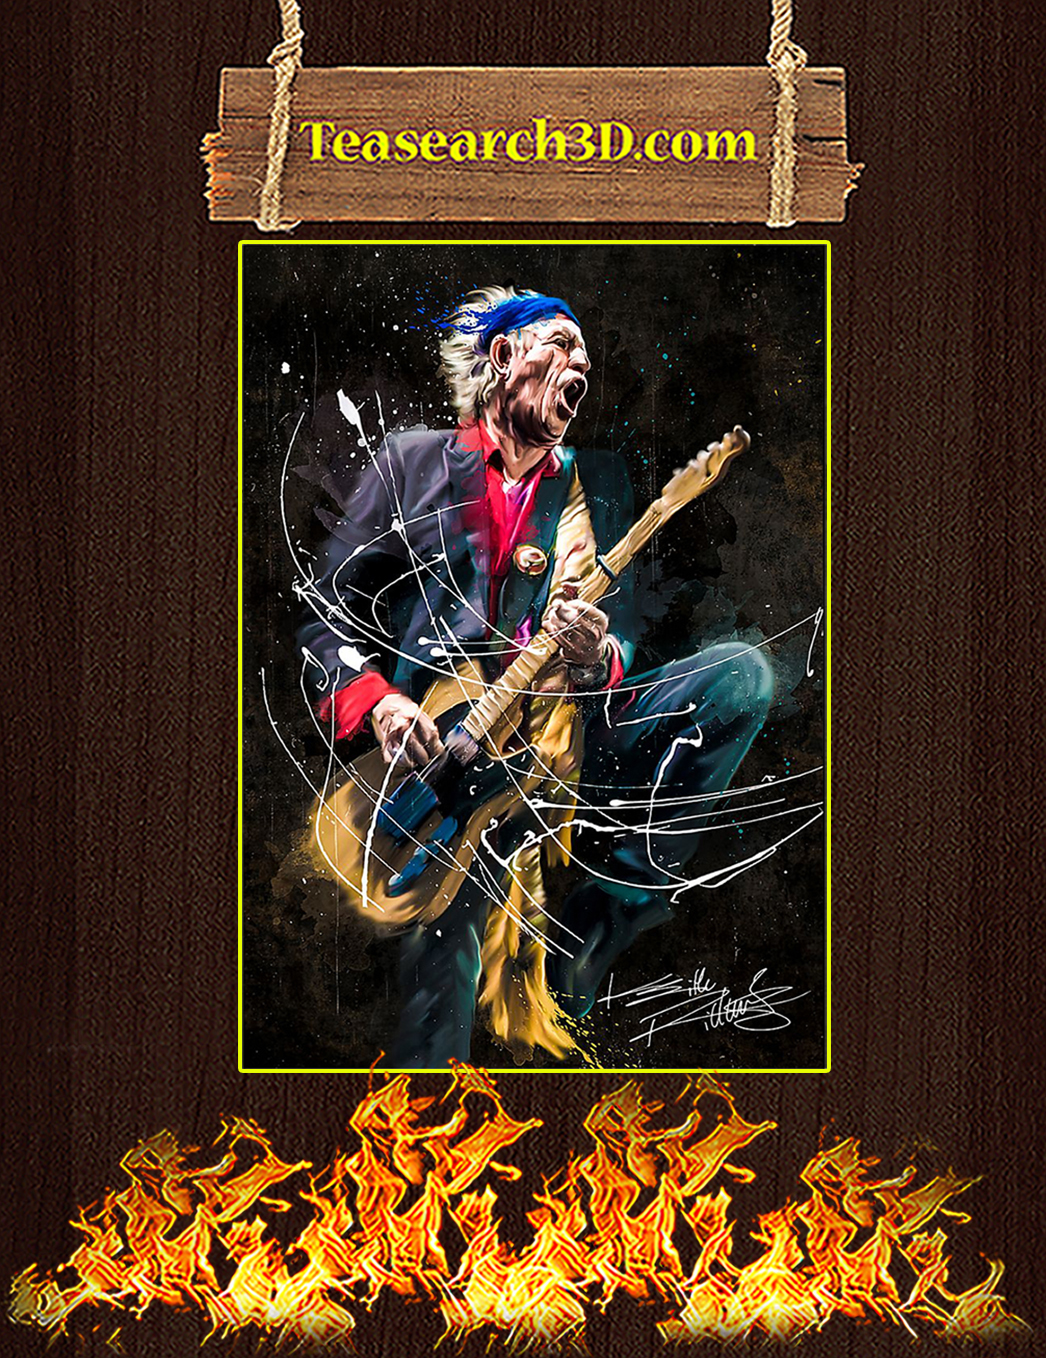 Legend Keith Richards Poster A1